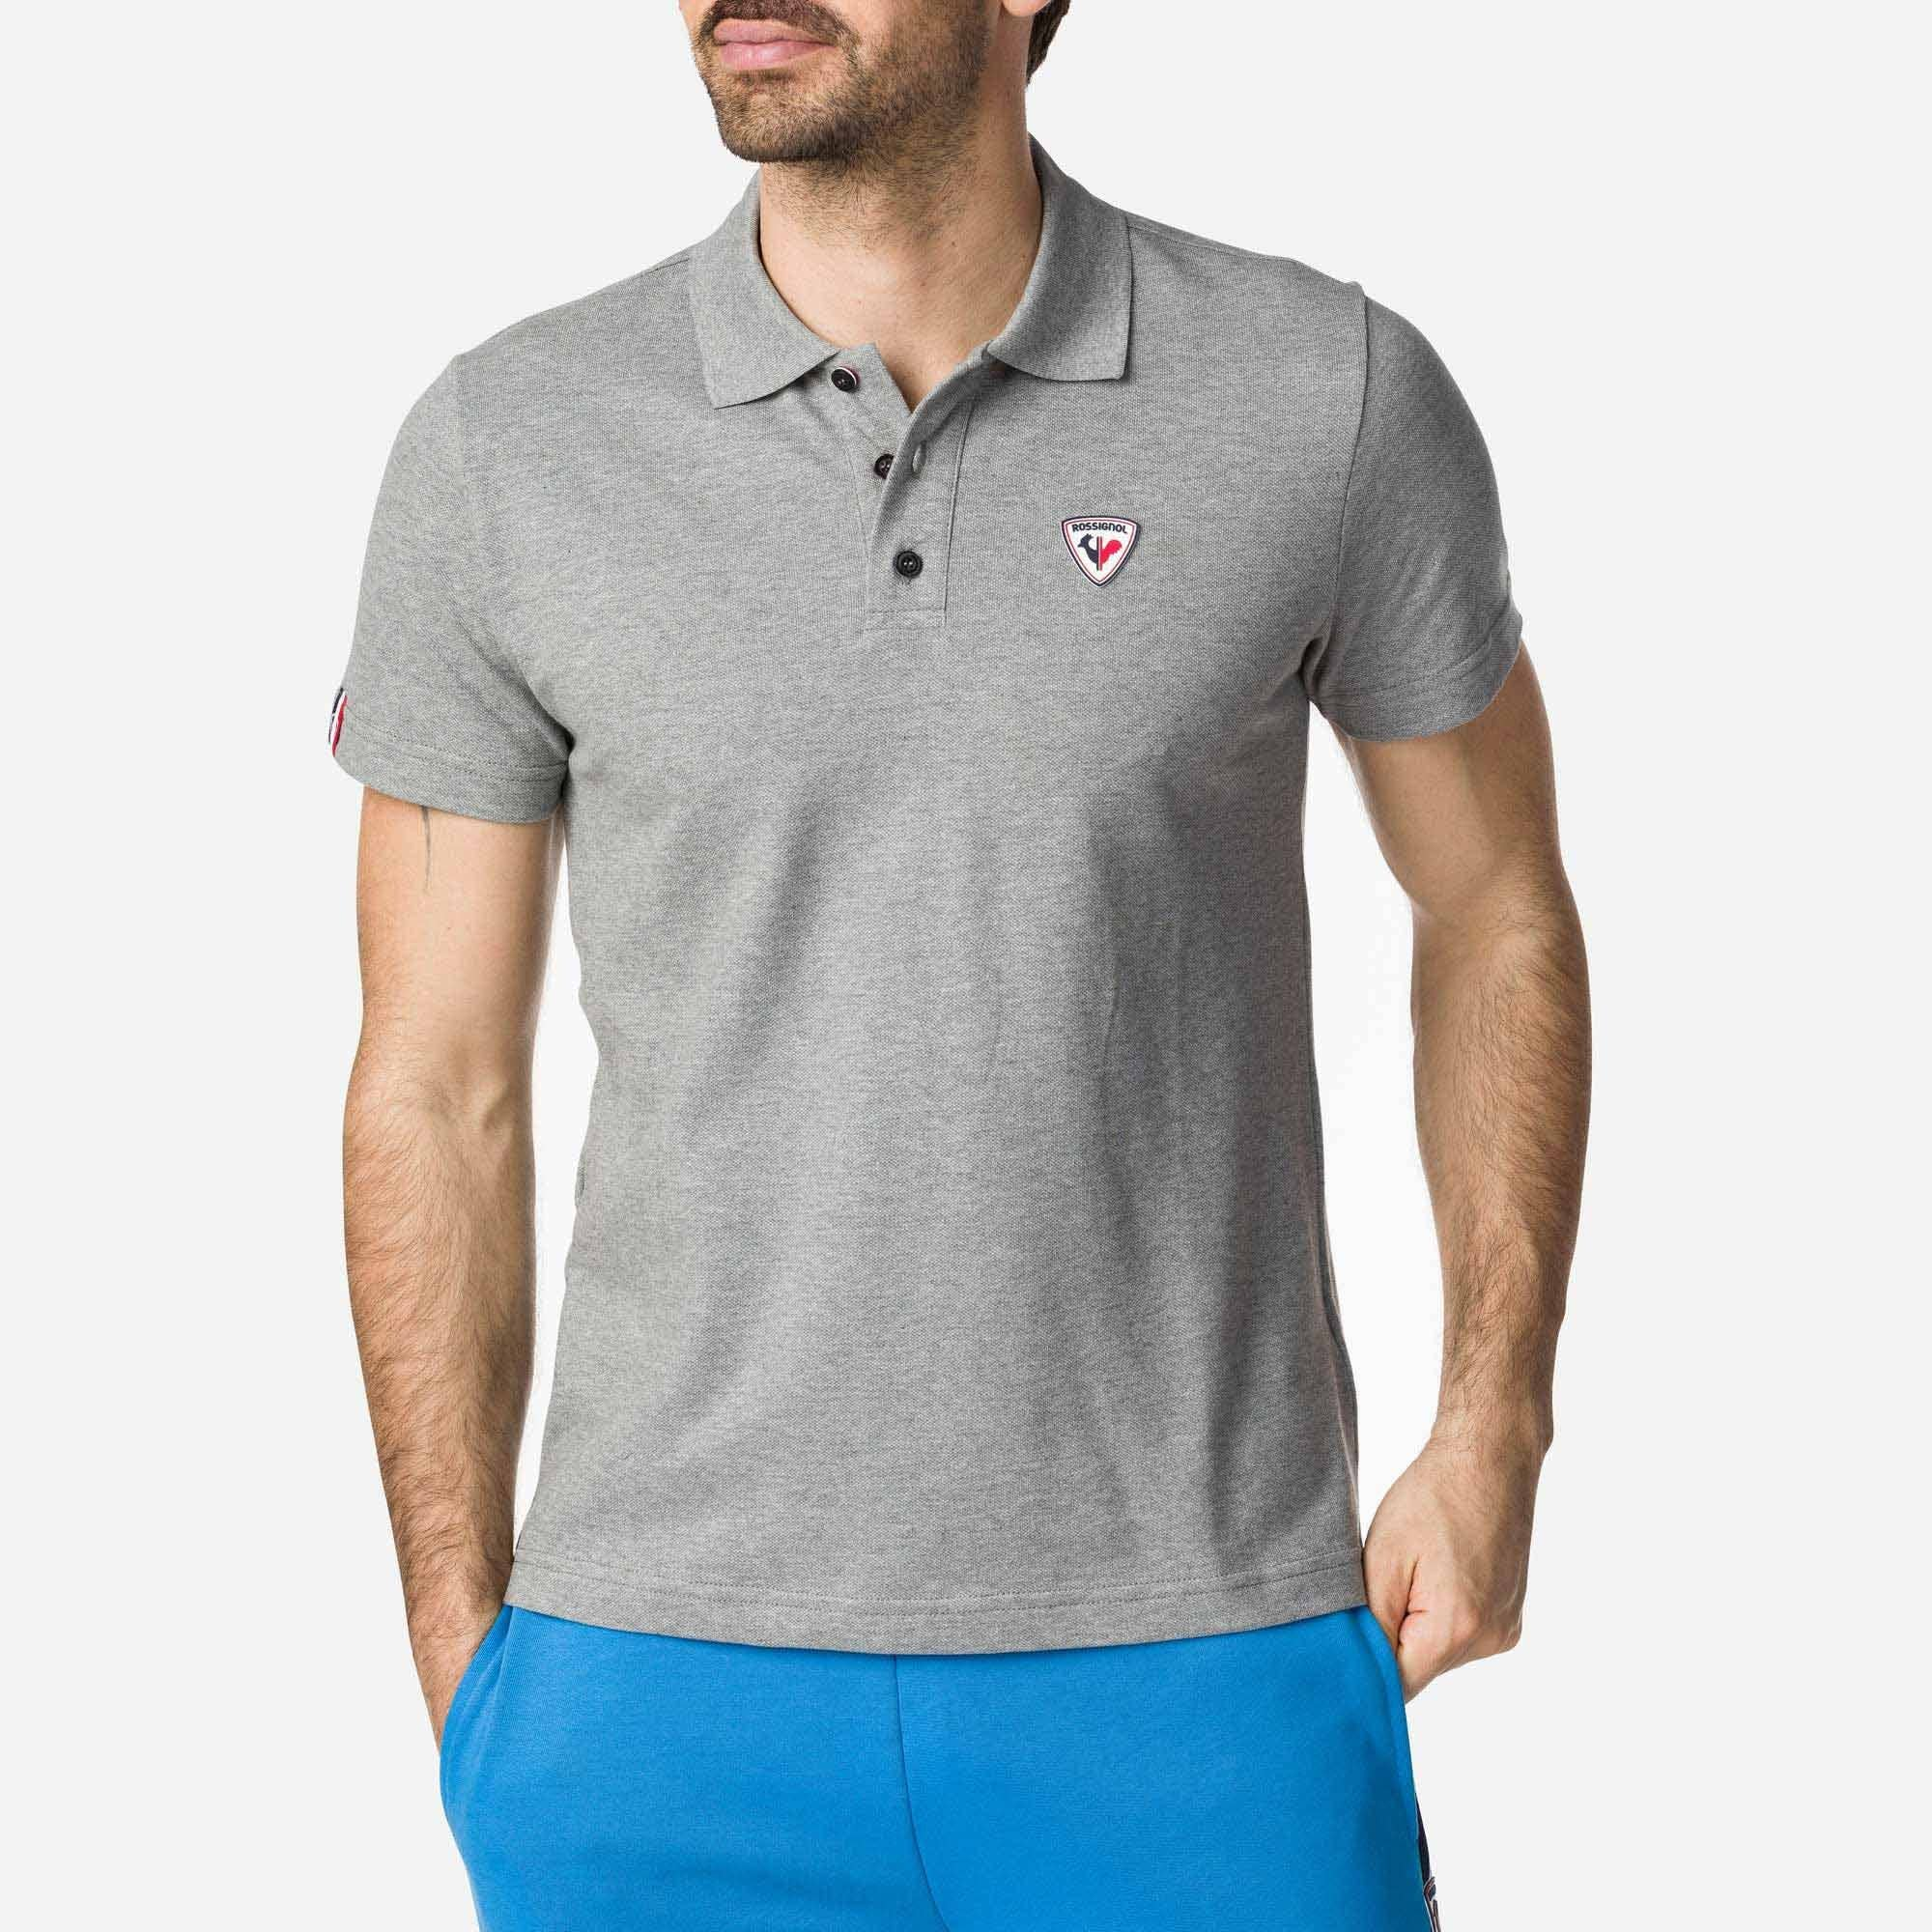 Image of Men's Classic Rooster Polo Shirt